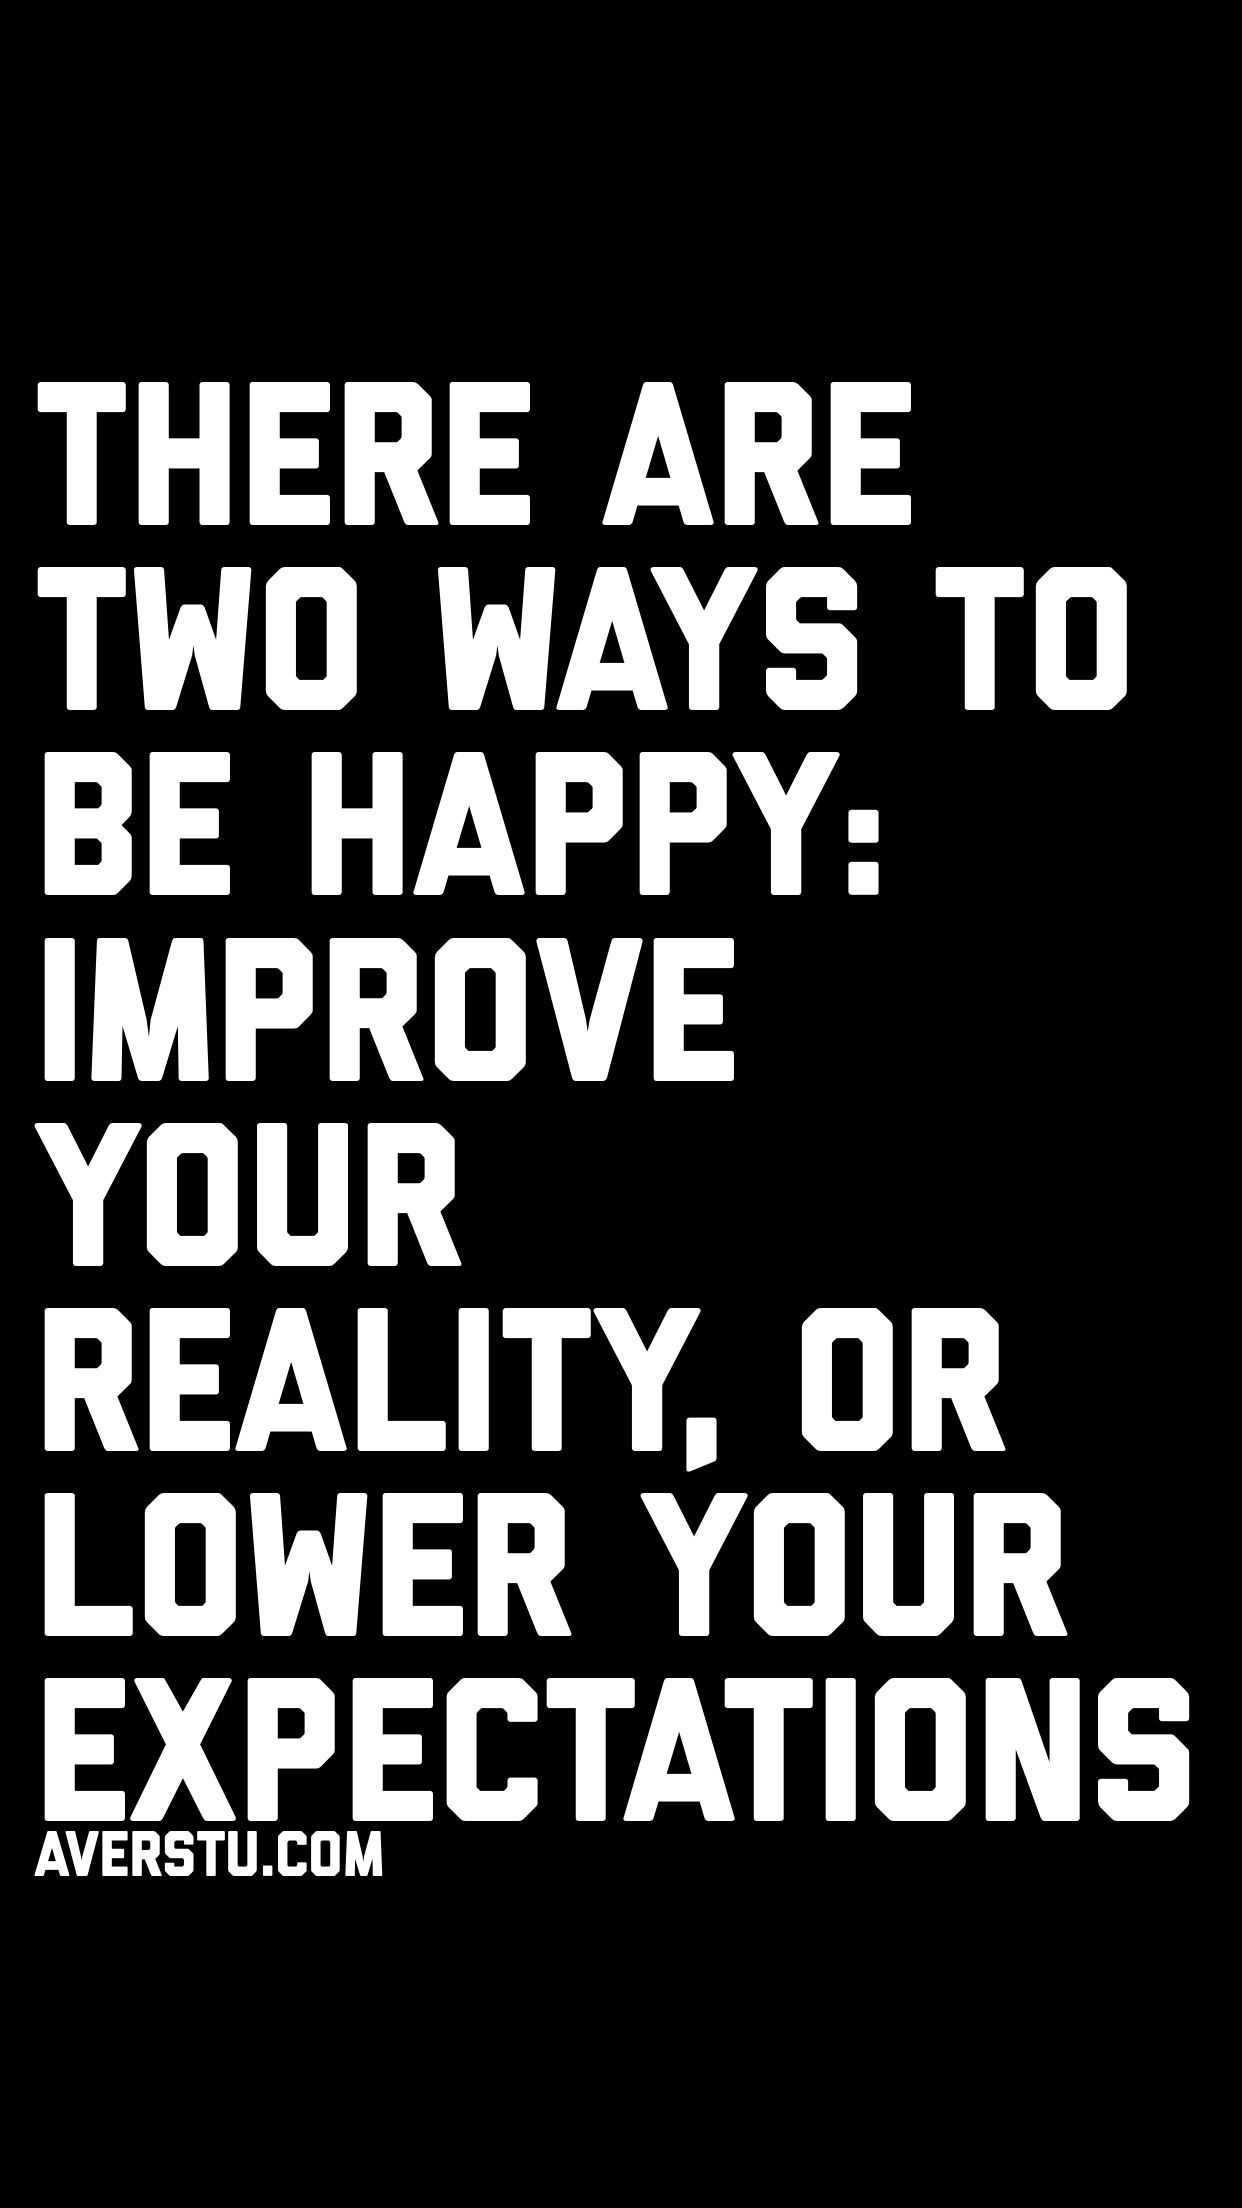 Deterministic View Of Reality Vs Expectations High Expectations Quotes Expectation Quotes Great Expectations Quotes